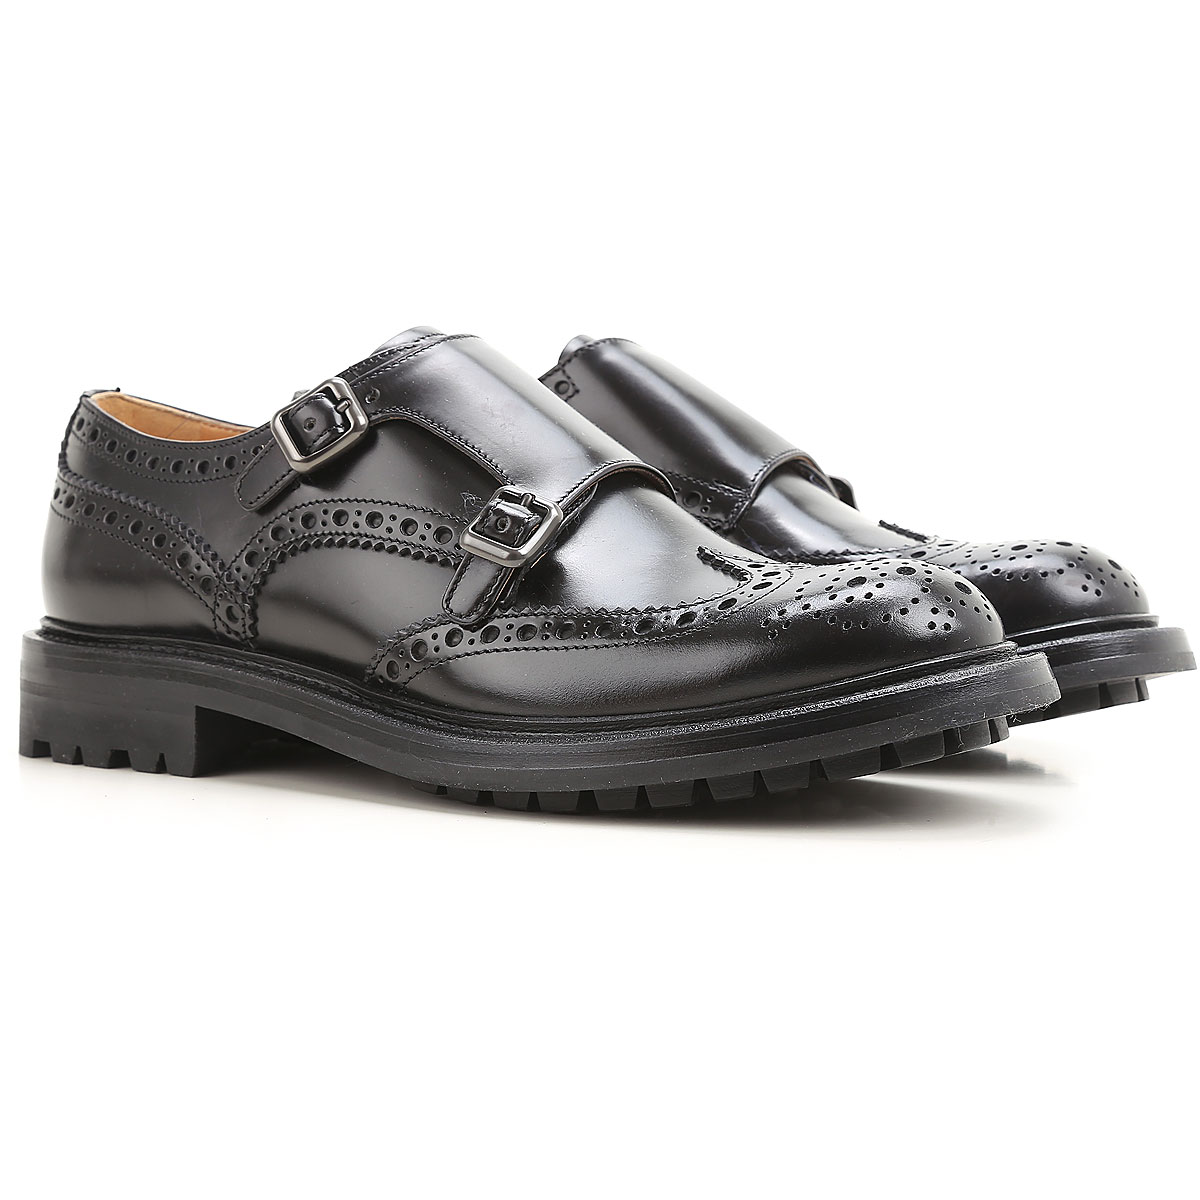 Image of Church's Monk Strap Shoes, Black, Leather, 2017, 10 11 8 8.5